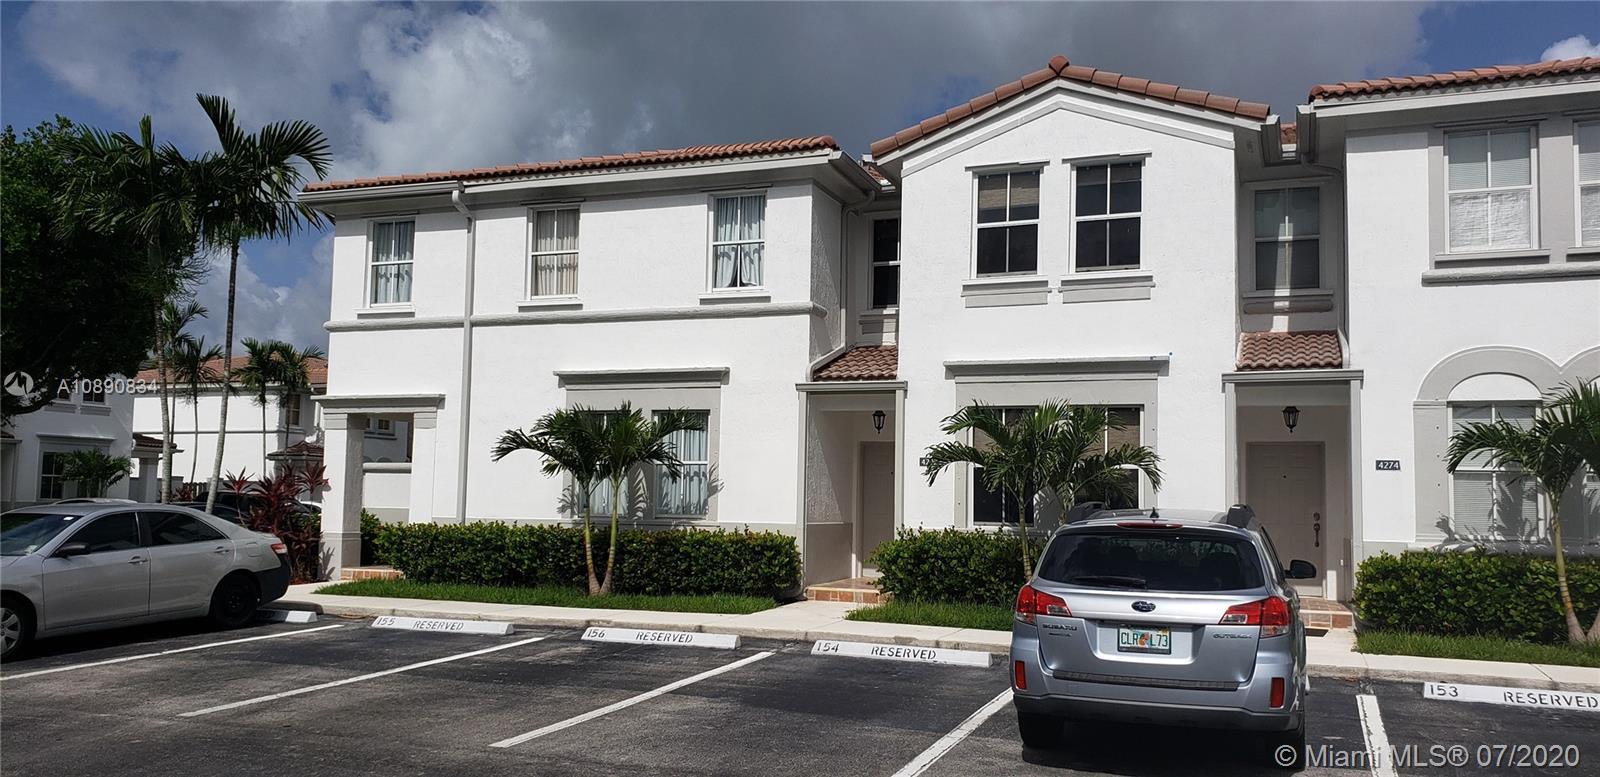 4292 SW 156th Ave #154 For Sale A10890834, FL